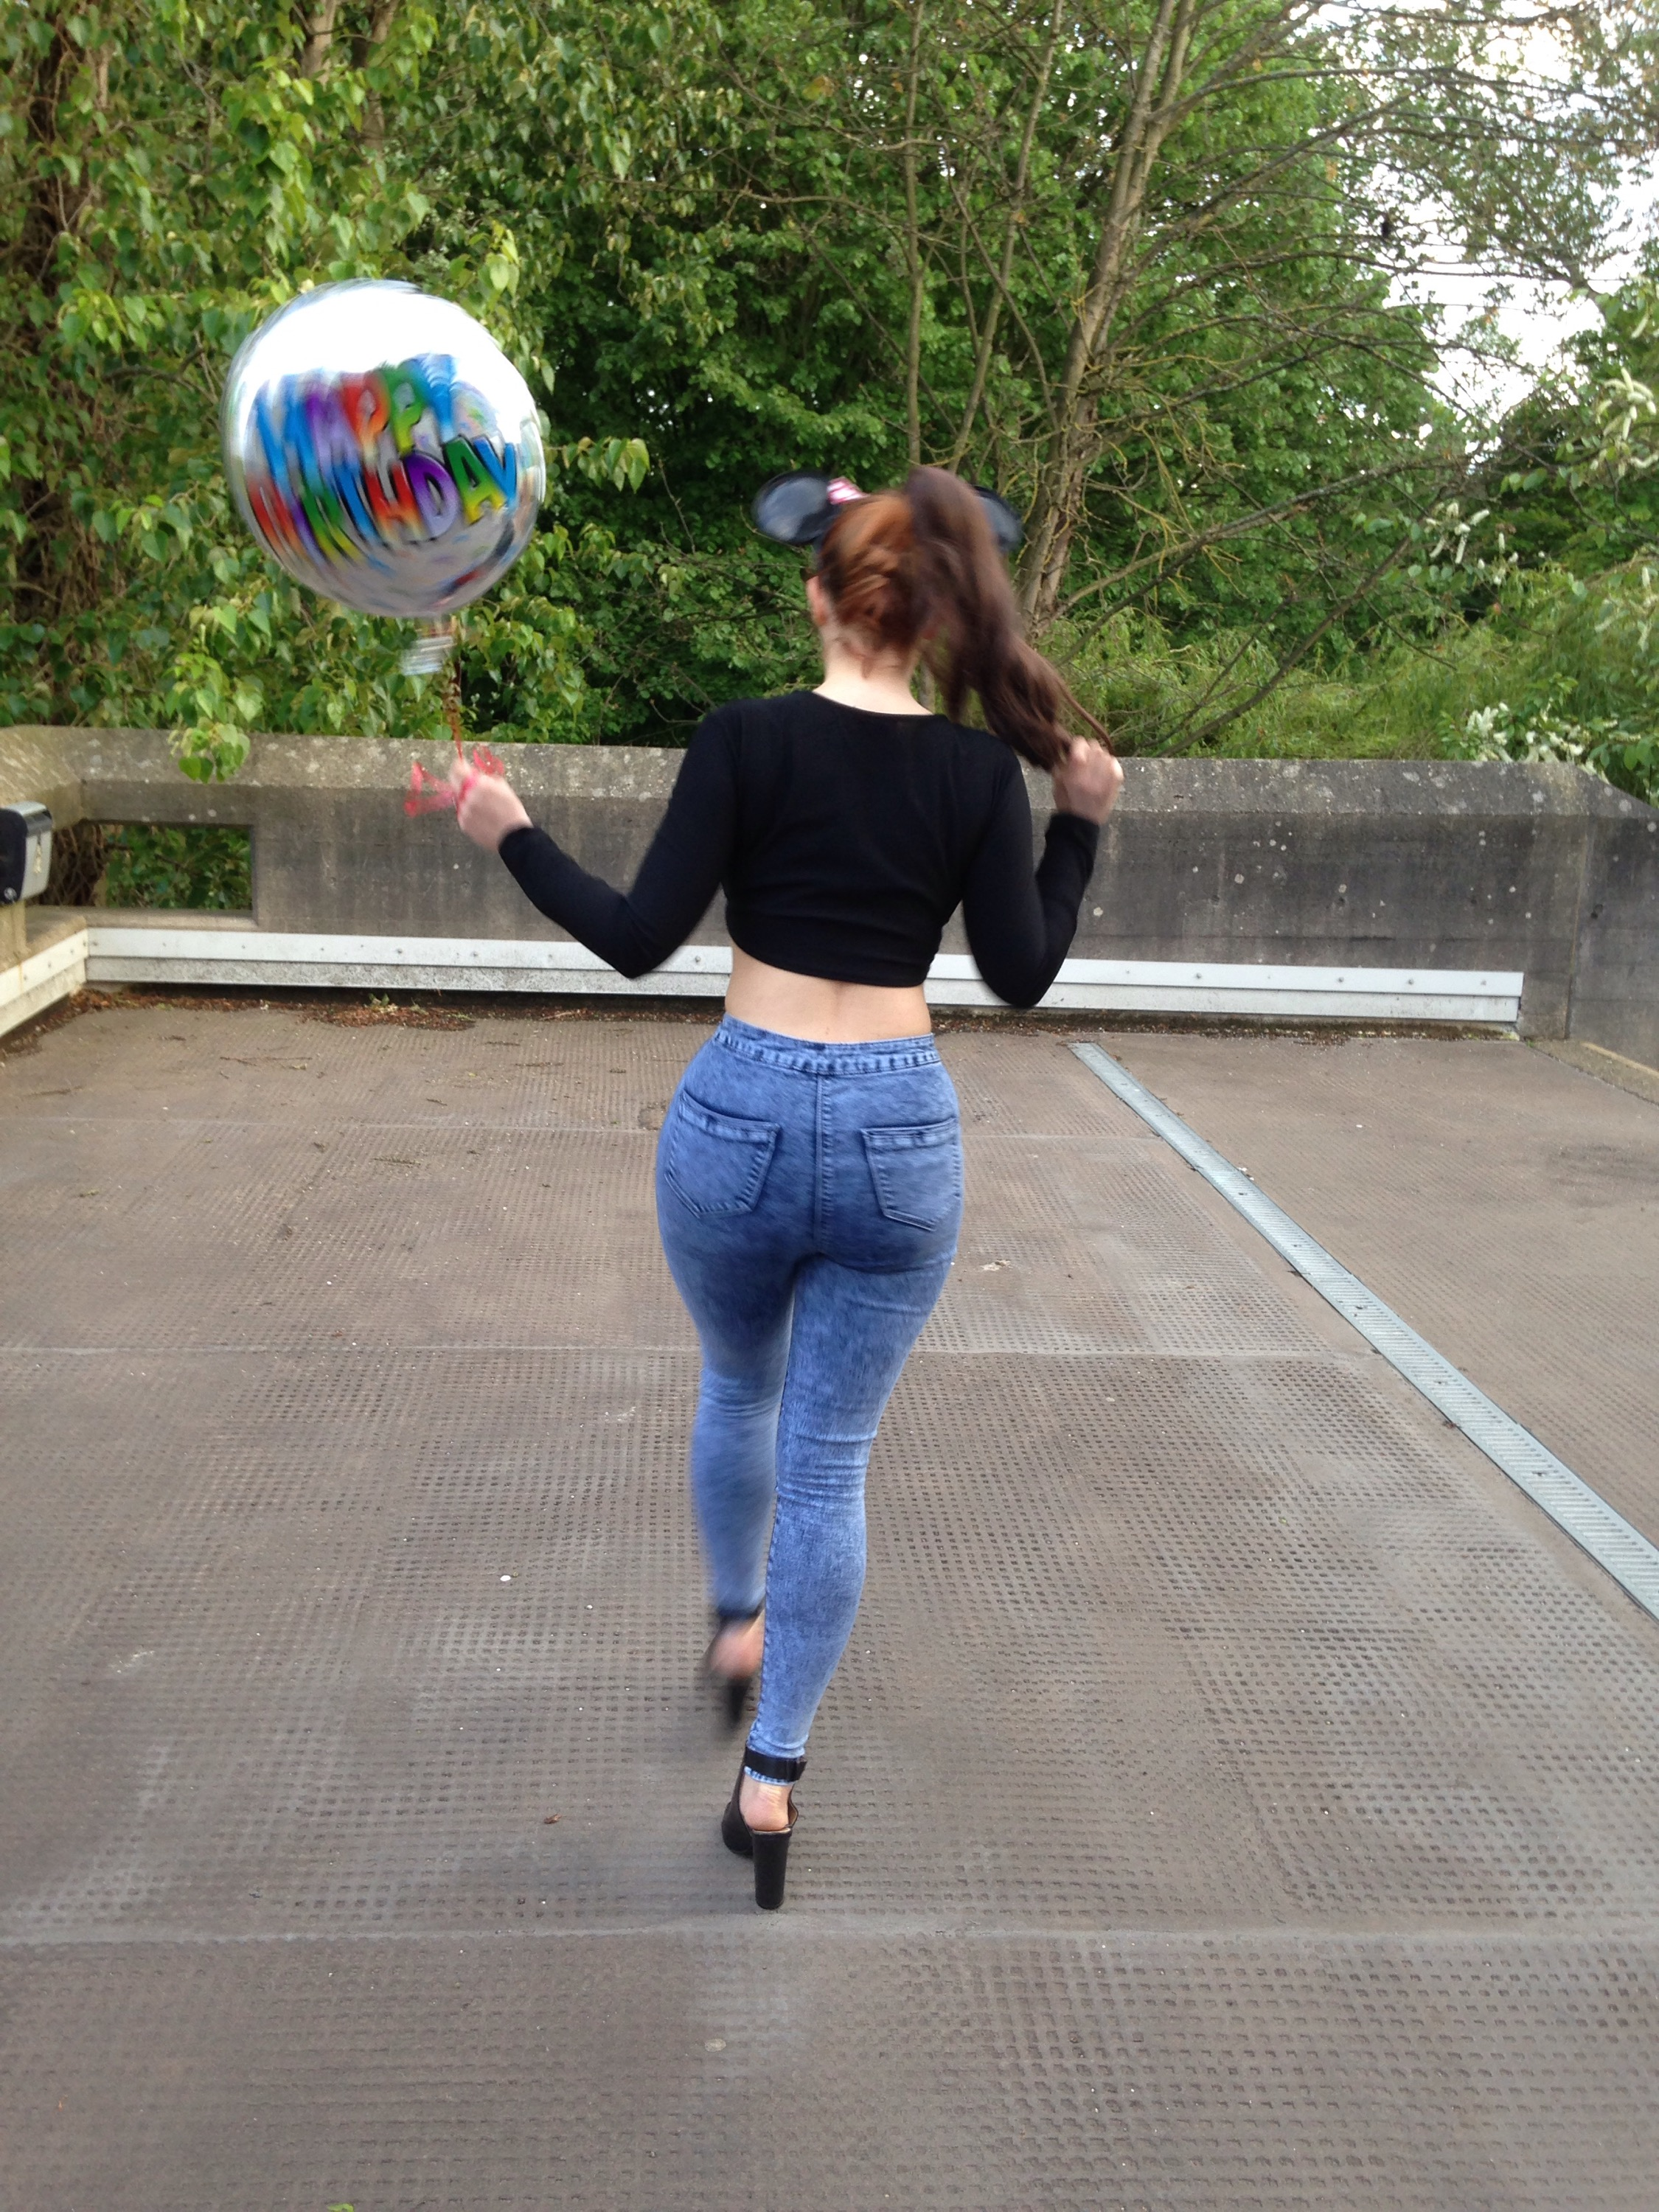 jennie chatrooms Jennie, 70 united states message add friend  chat rooms random chat talk to strangers find a girl find a man members online members search newly registered ask .